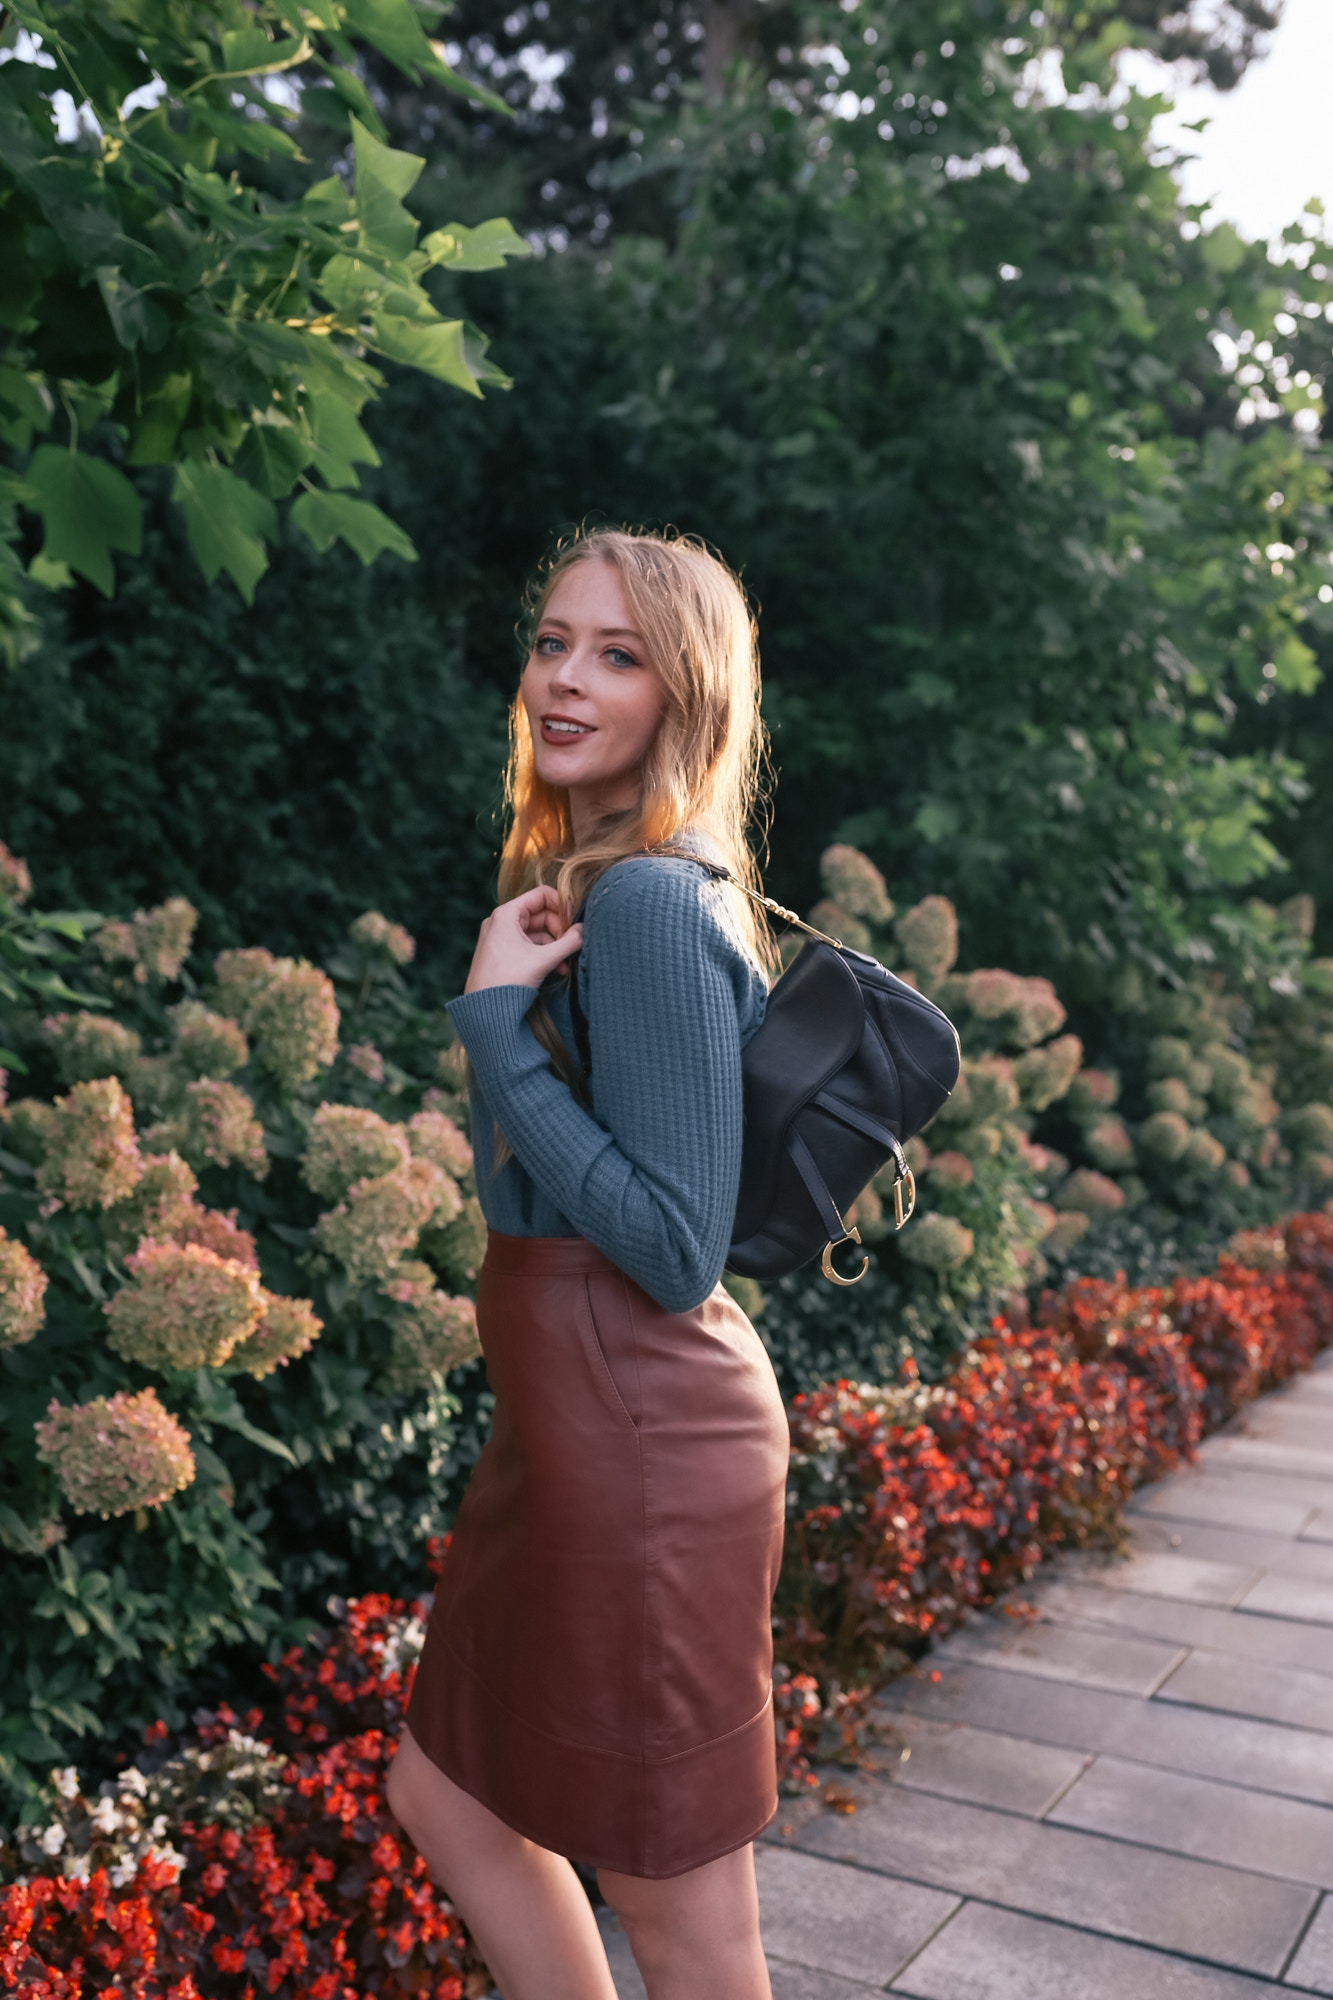 How I styled the Dior Saddle Bag: wearing a teal cashmere sweater, and leather skirt for a chic casual look.